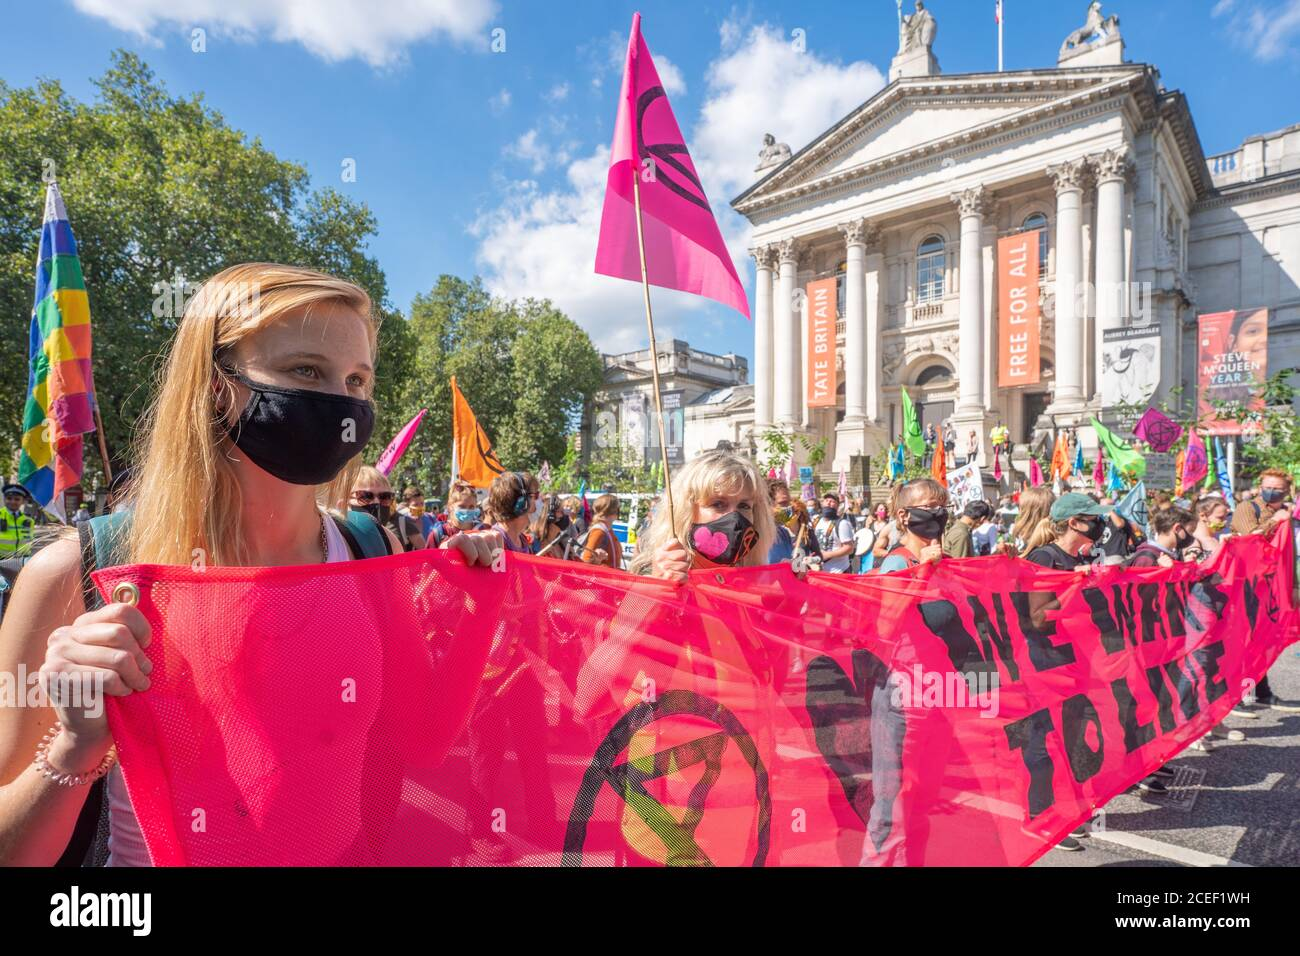 London, UK. Tuesday, September 1, 2020. A protest by Extinction Rebellion starting at Tate Britain in London in support of the Climate and Ecological Emergency (CEE) Bill. Photo: Roger Garfield/Alamy Live News Stock Photo